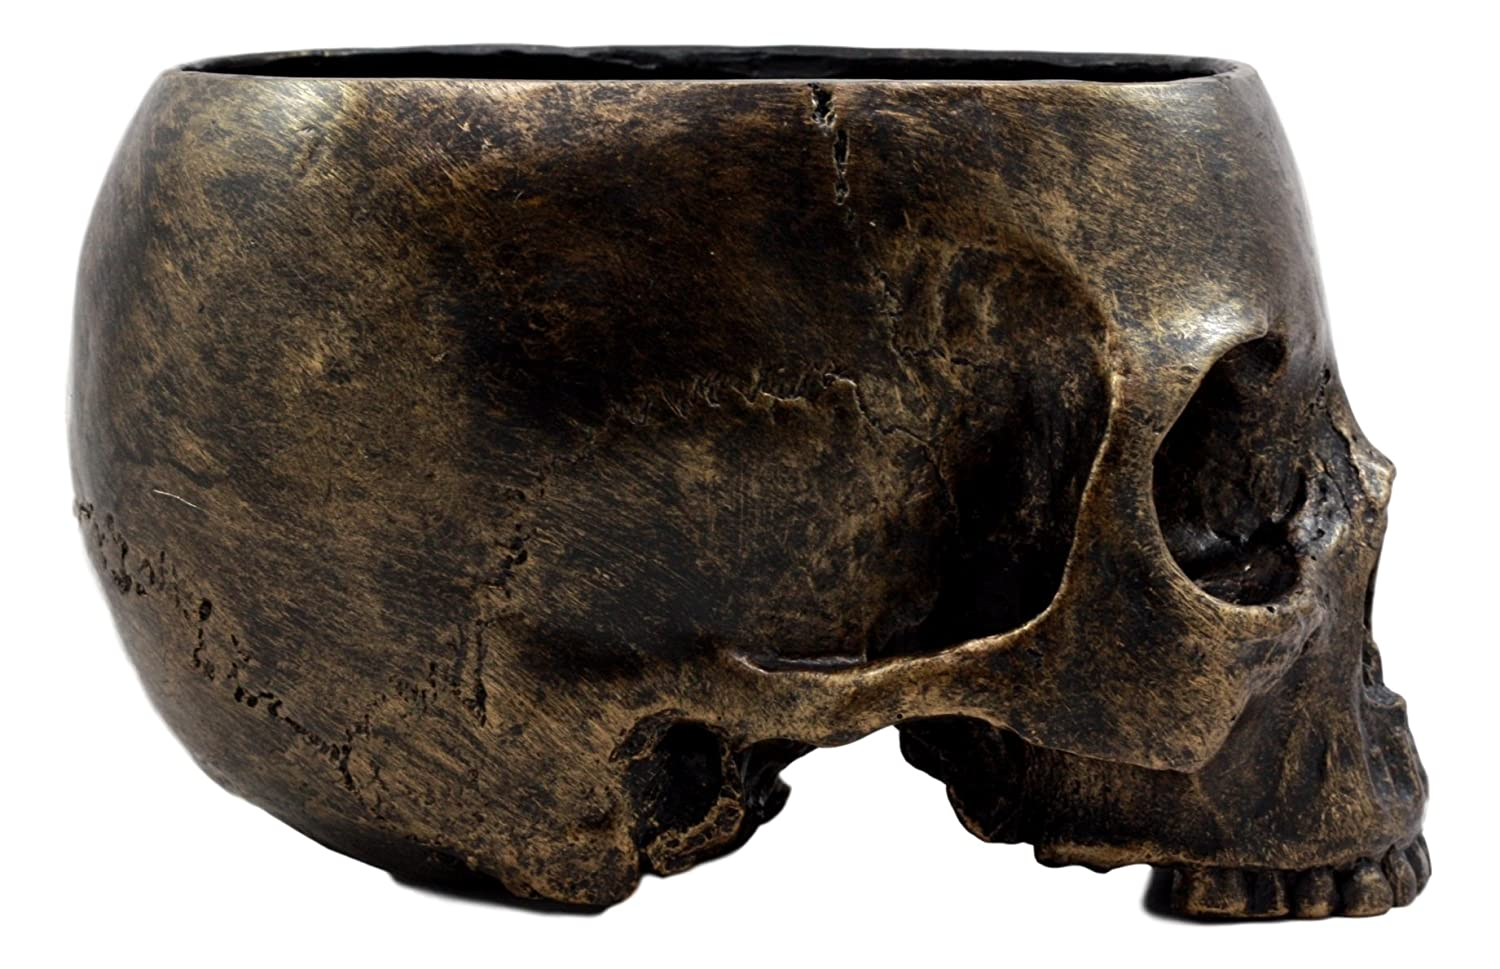 Ebros Gift Bronzed Day of The Dead Skull Bowl Figurine 7 Long Skeleton Head Gardening Planter Sculptural Vessel Treat Container Decorative Bowl